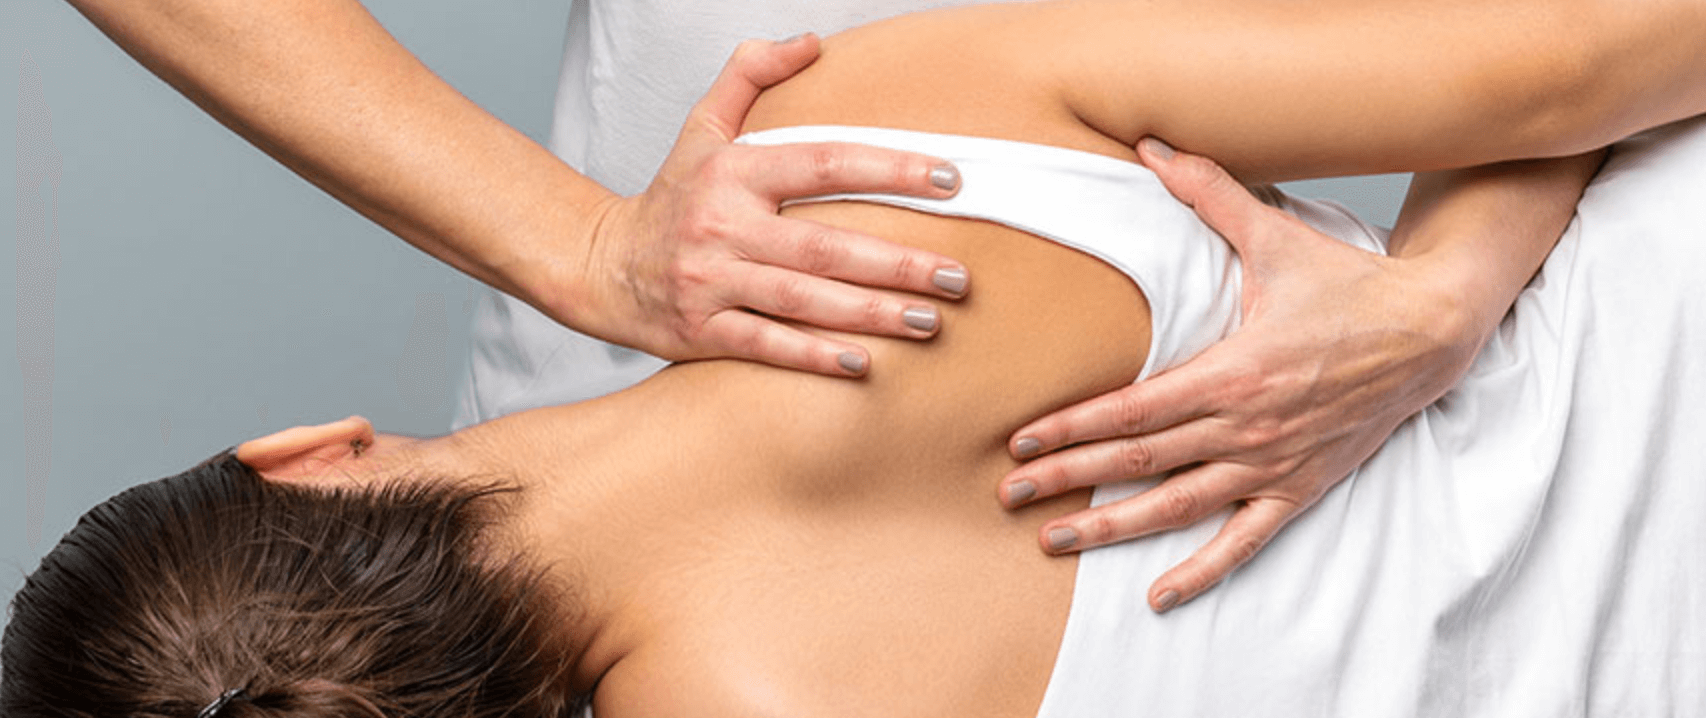 common-causes-shoulder-pain